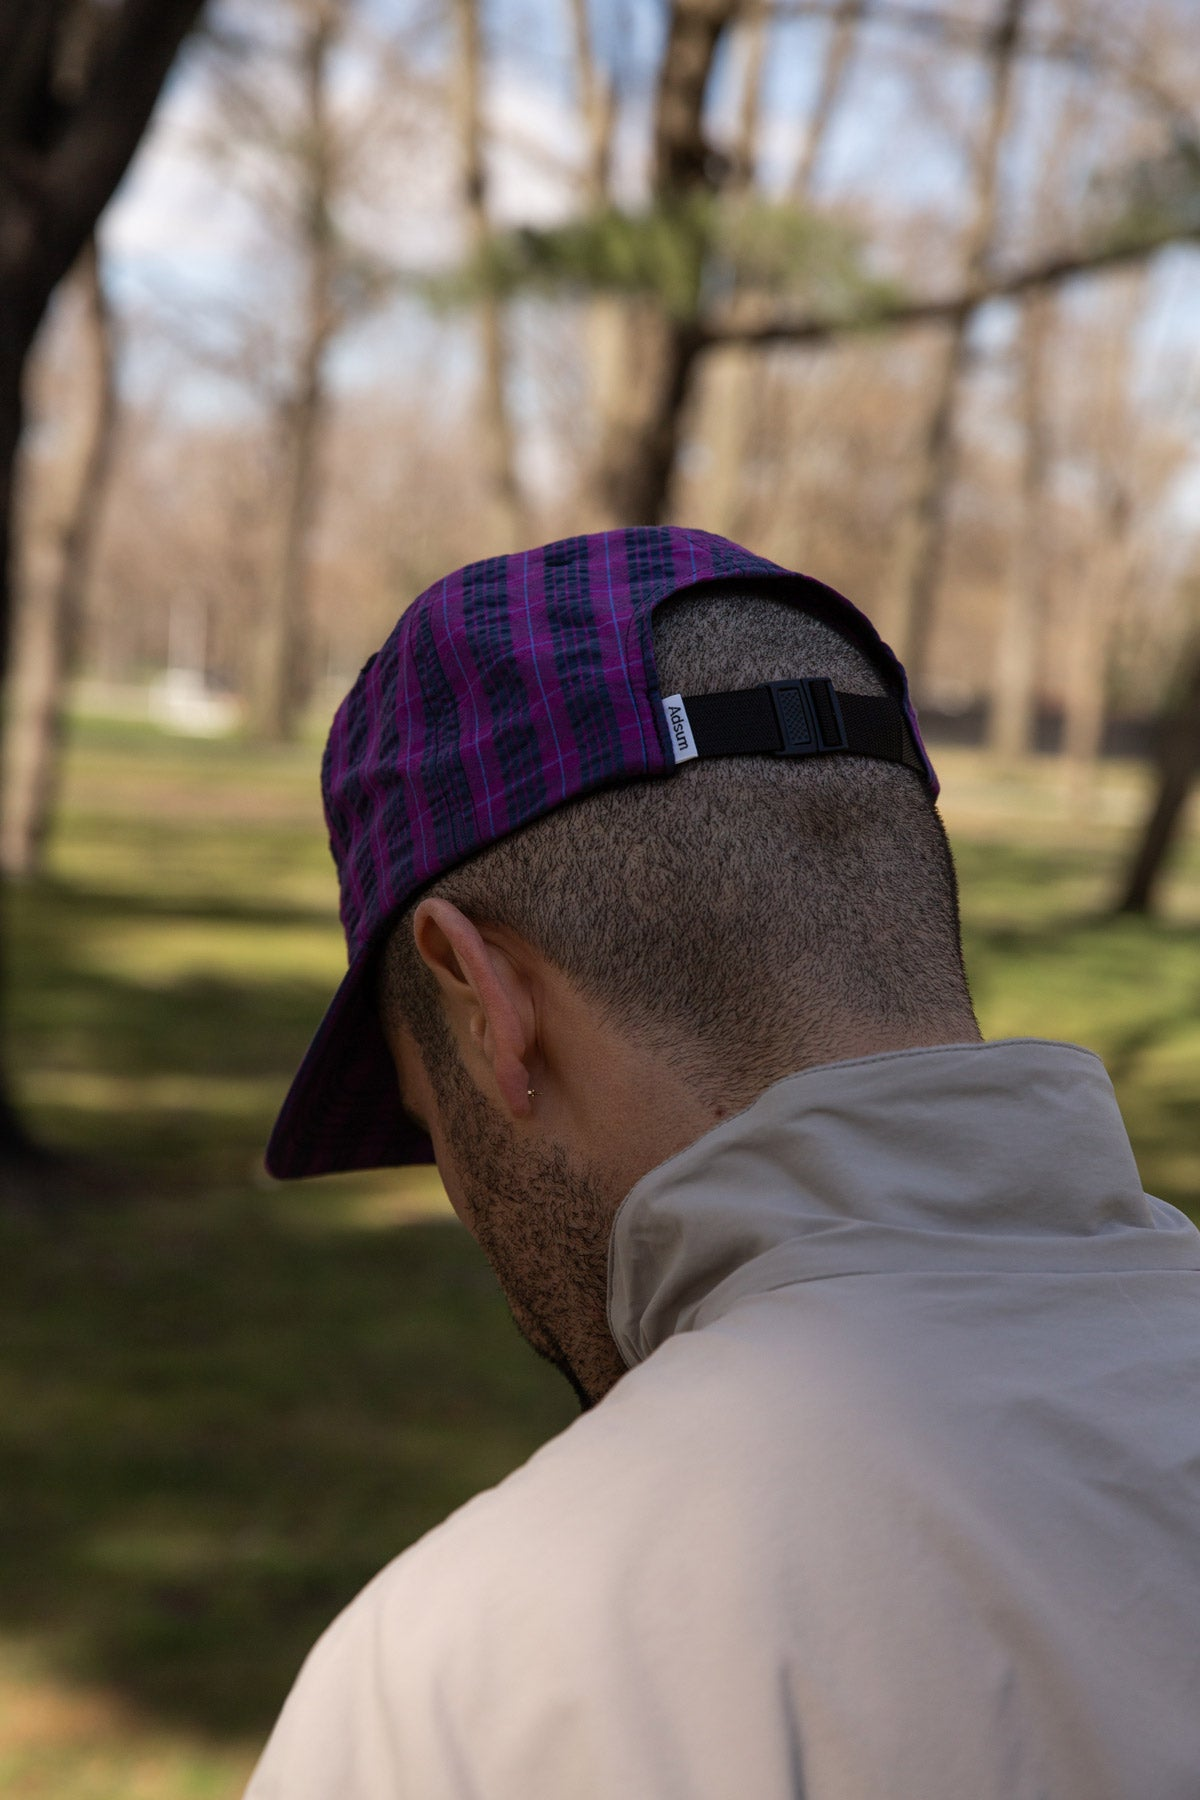 Adsum Purple Plaid hat on head